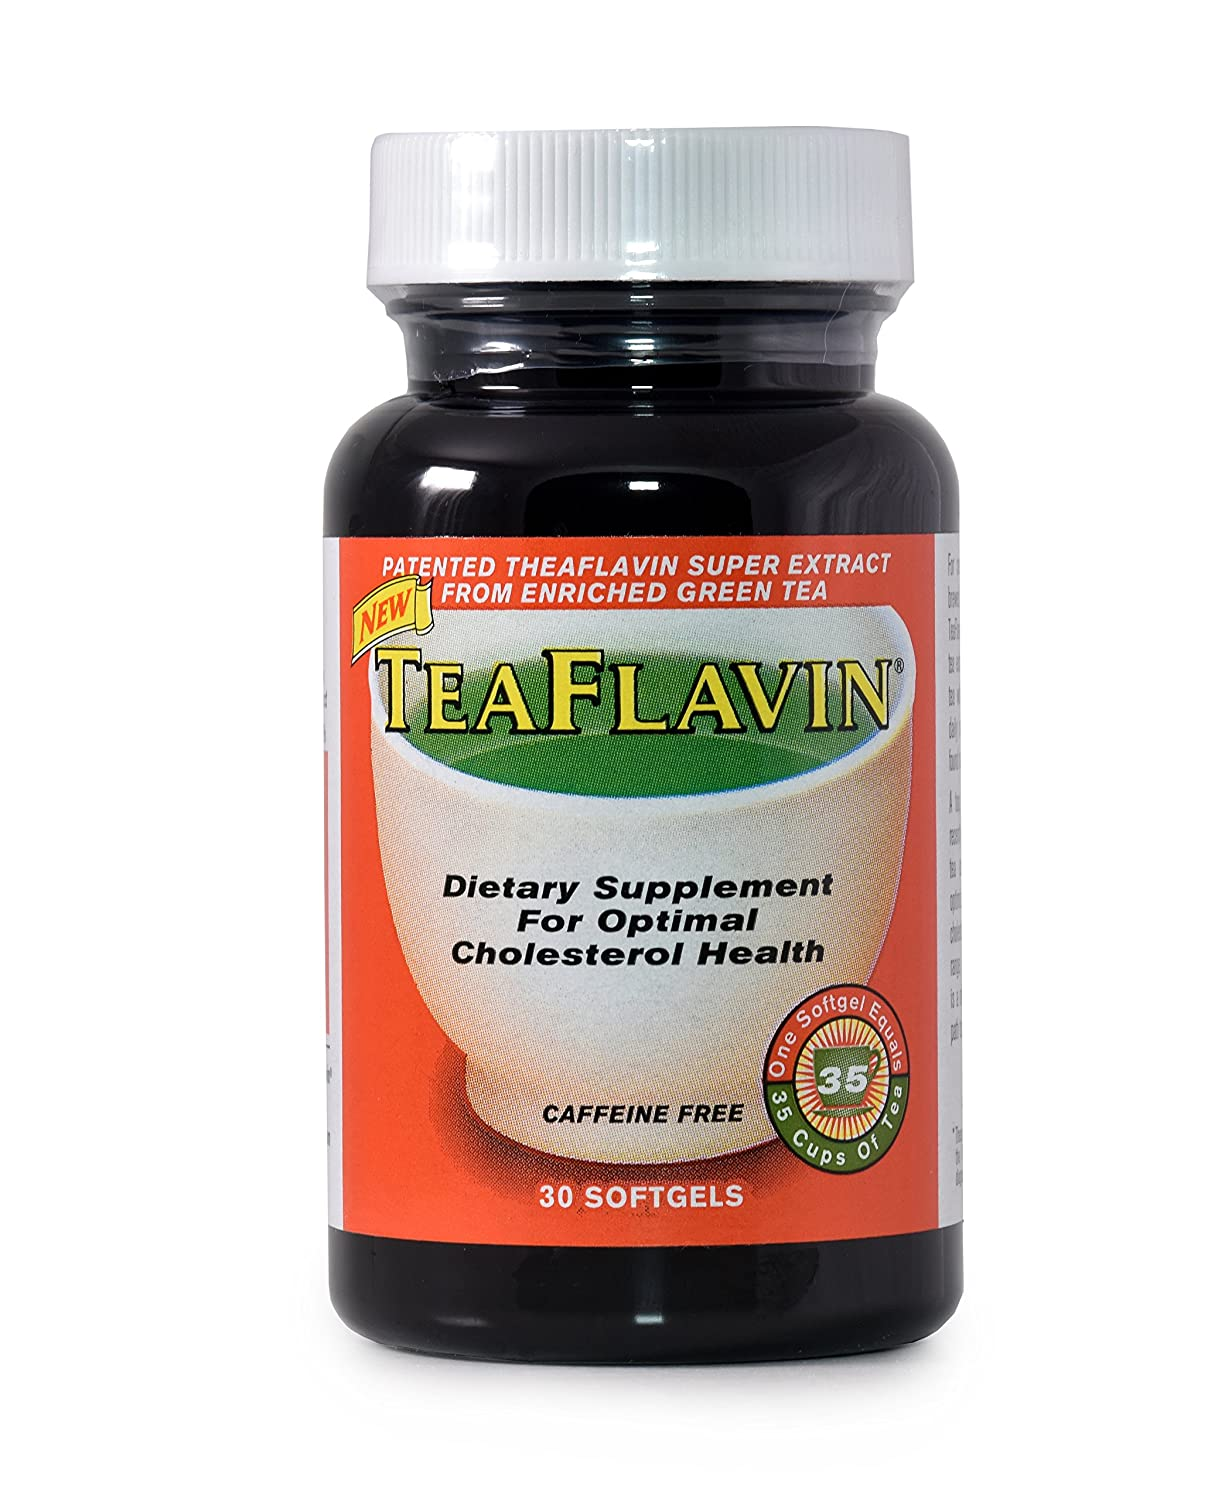 Green Tea Extract immune system support supplements, weight loss, Reduces Cholesterol, Natural Energy Caffeine Free with Theaflavins – 1 Capsule 35 Cups of Green Tea 30 Capsules 1 month supply